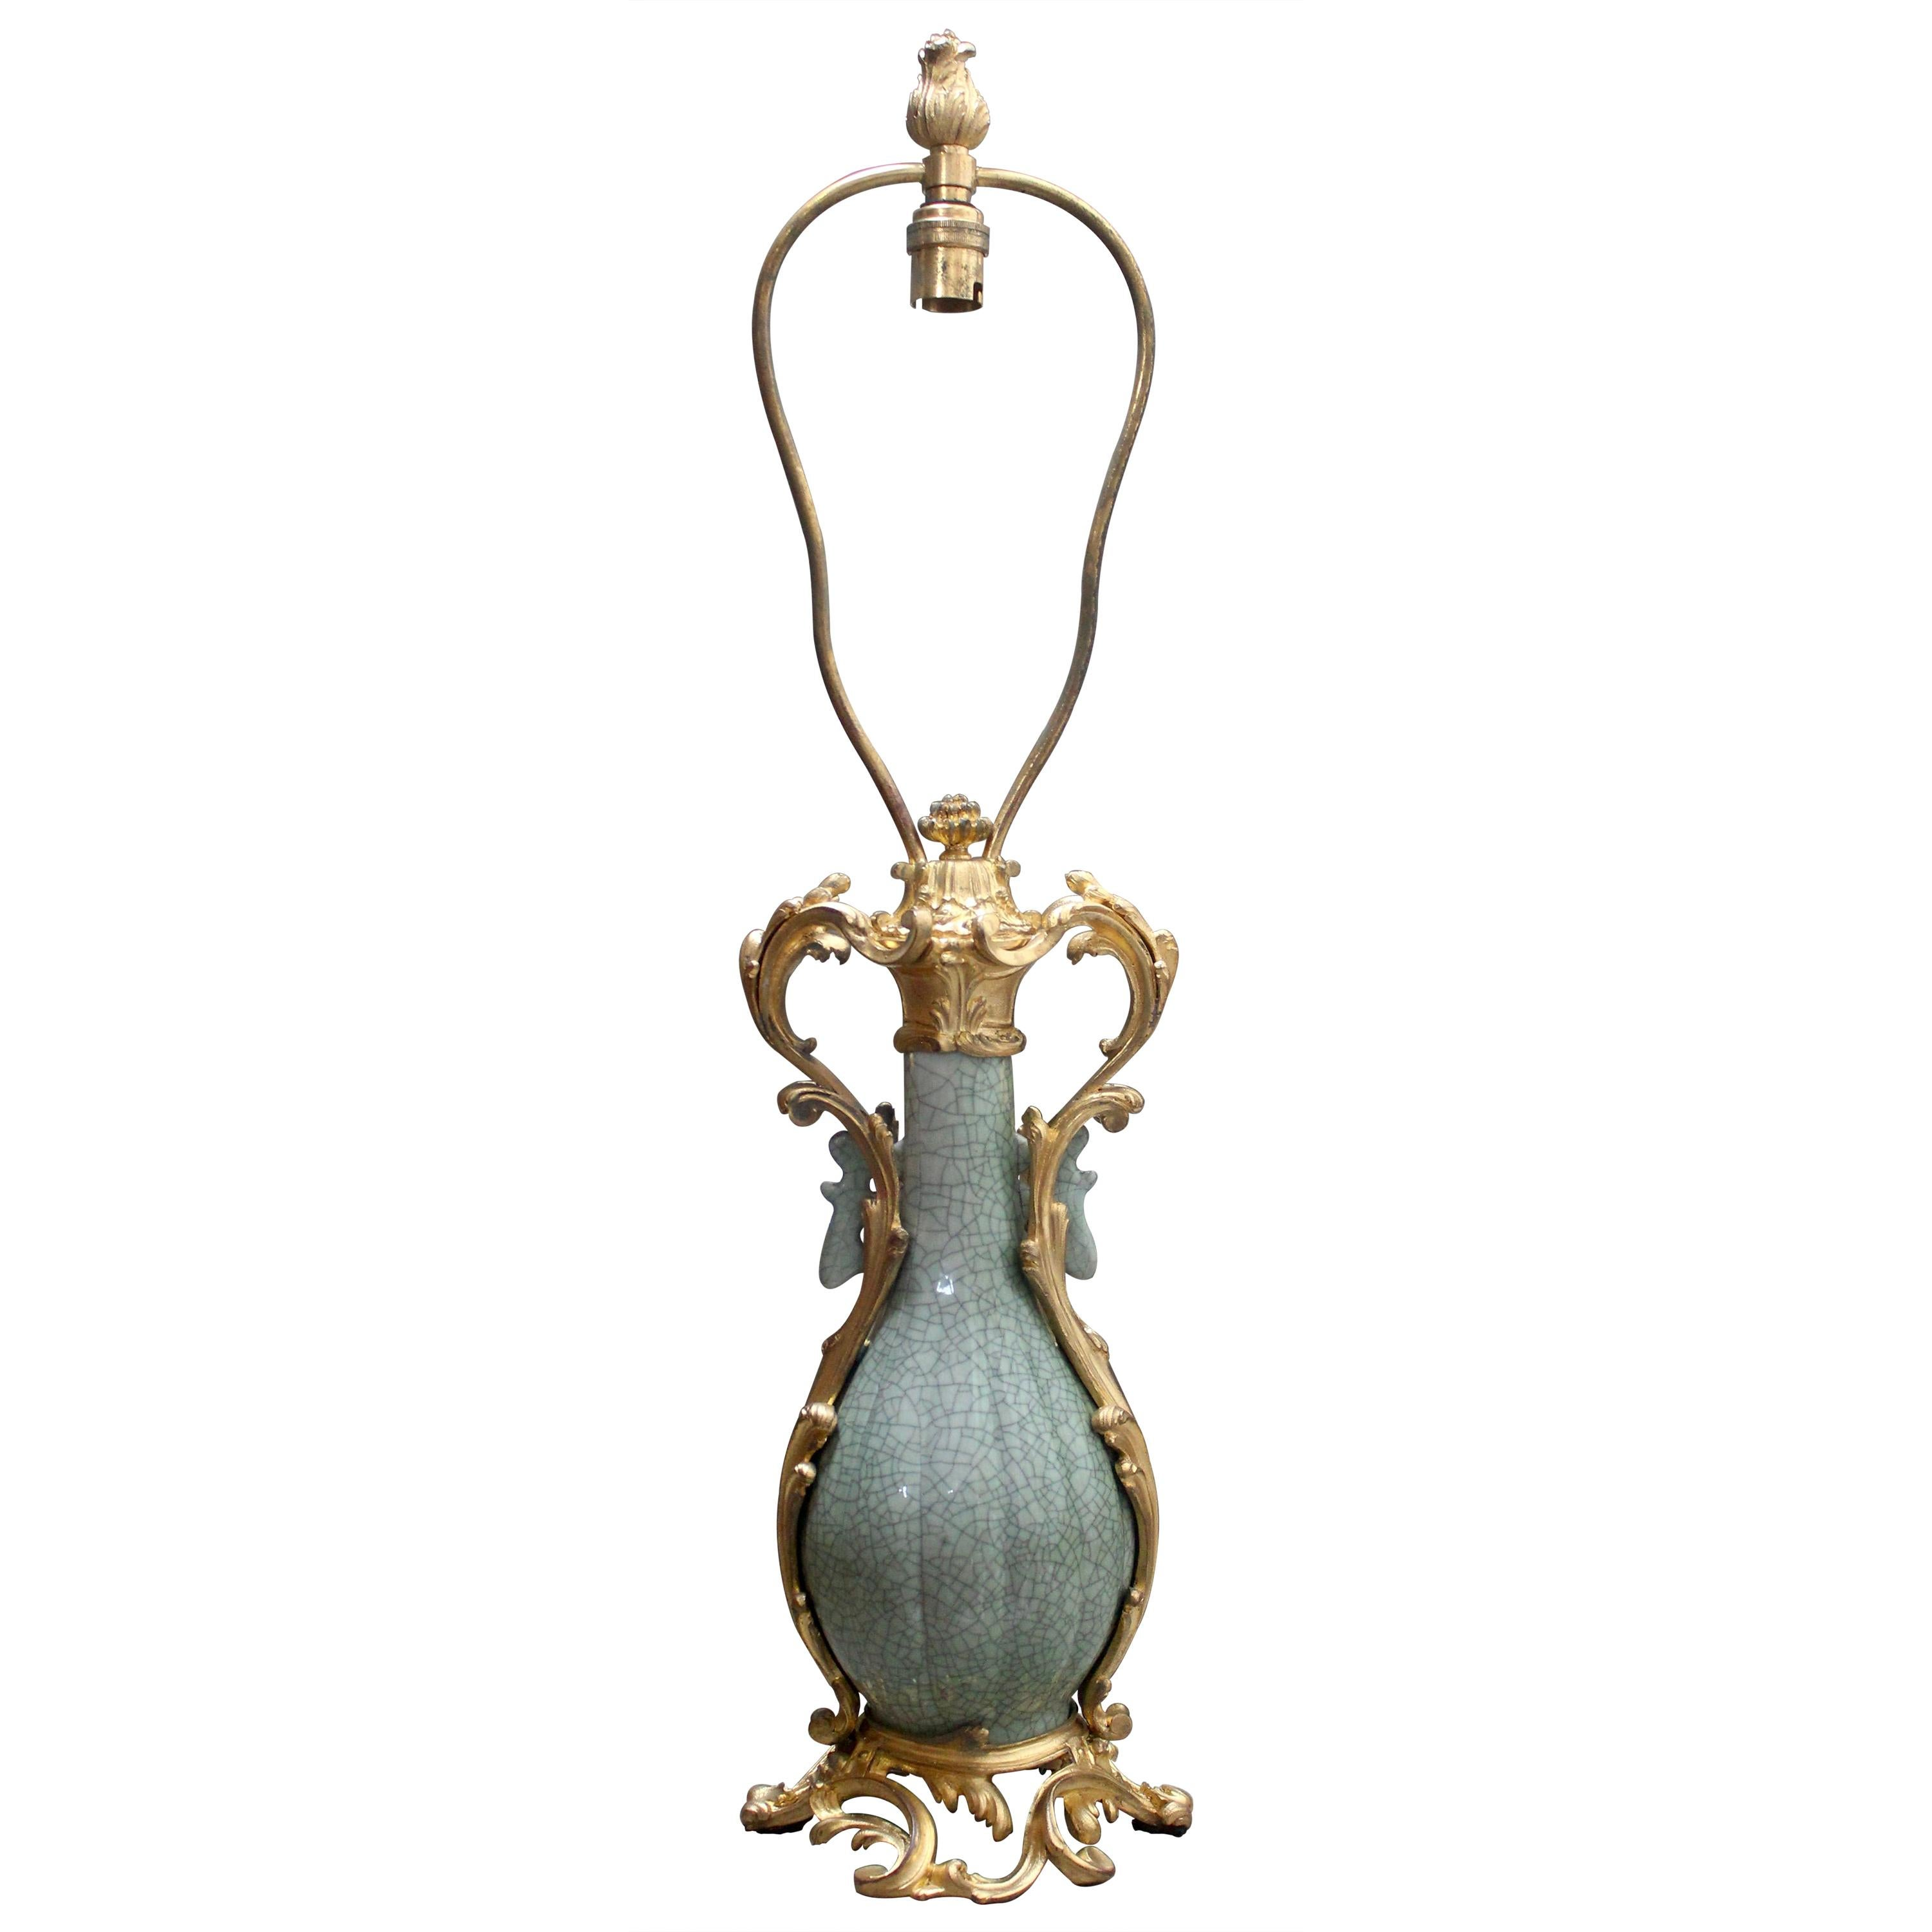 19th Century Craquelé Celadon Porcelain Vase Ormolu-Mounted in Lamp